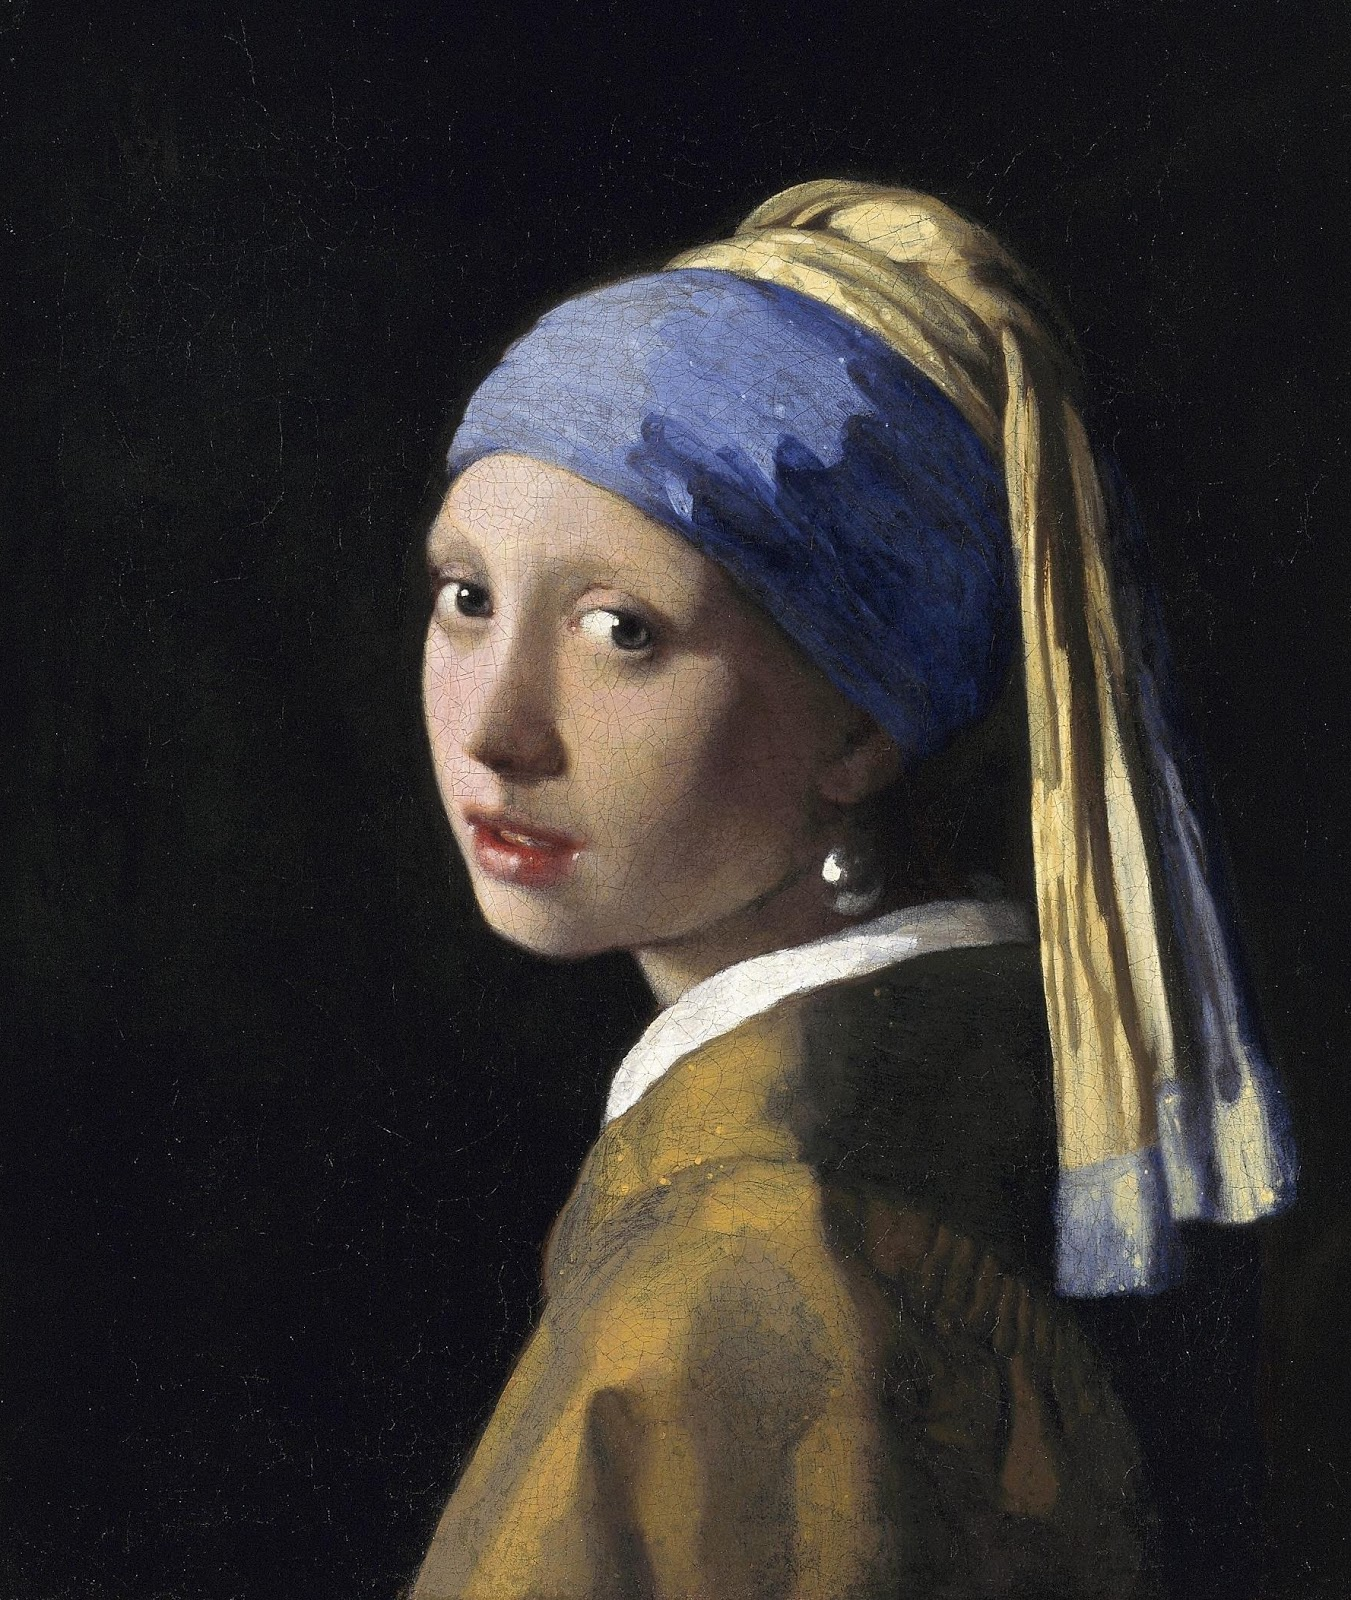 johannes vermeer girl with a pearl earring analysis